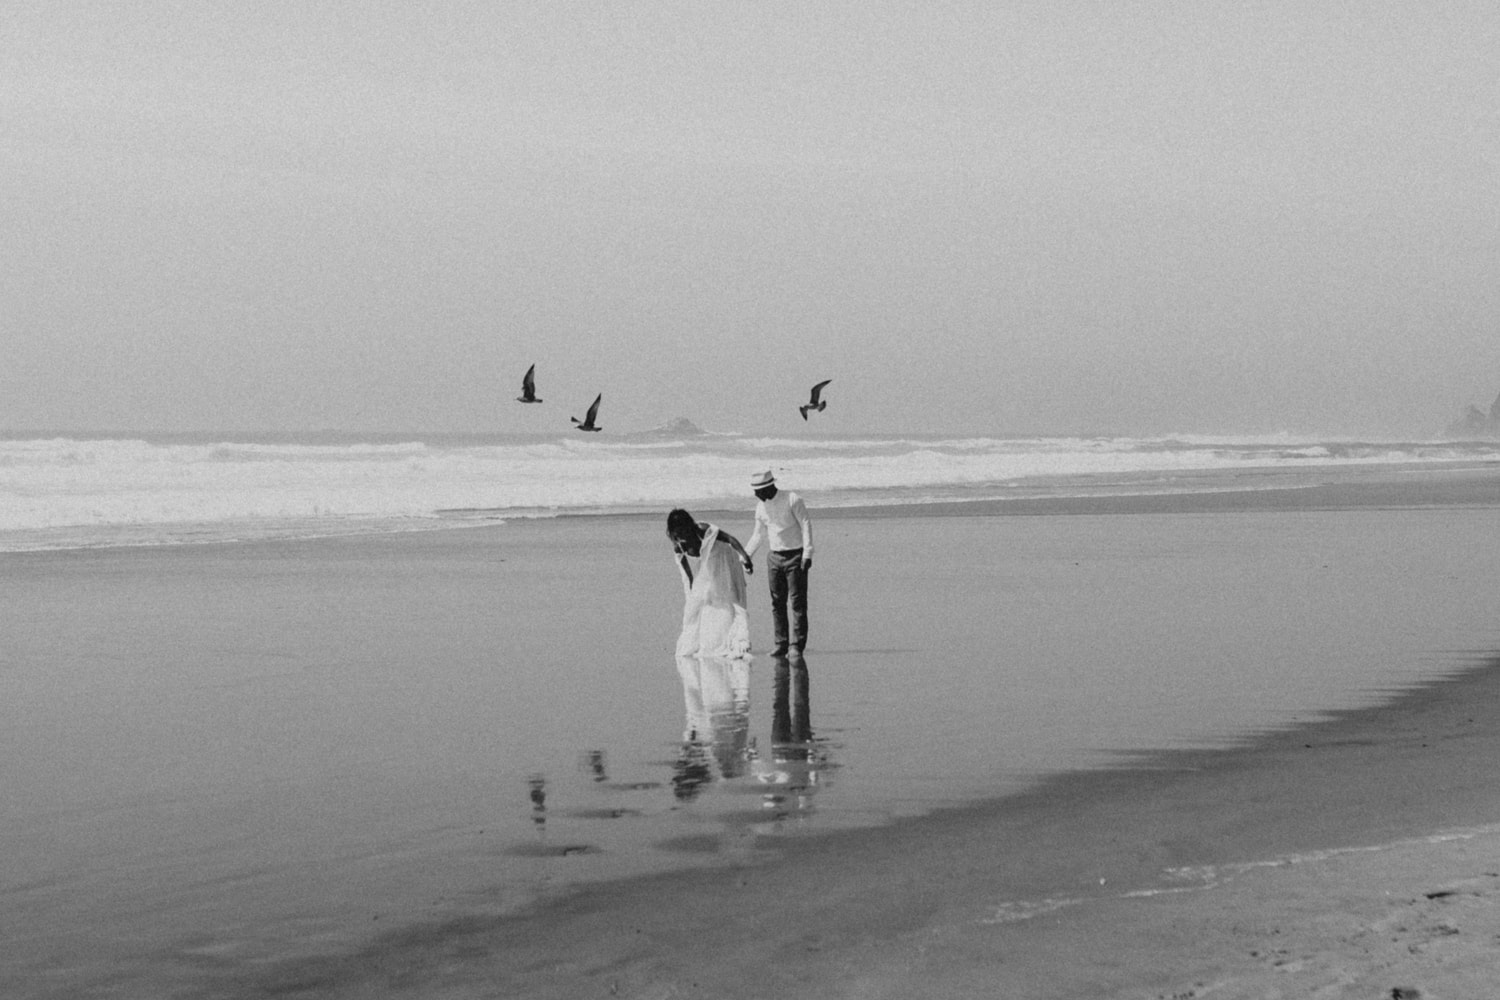 A bride and groom walking on the beach with birds on their wedding day.